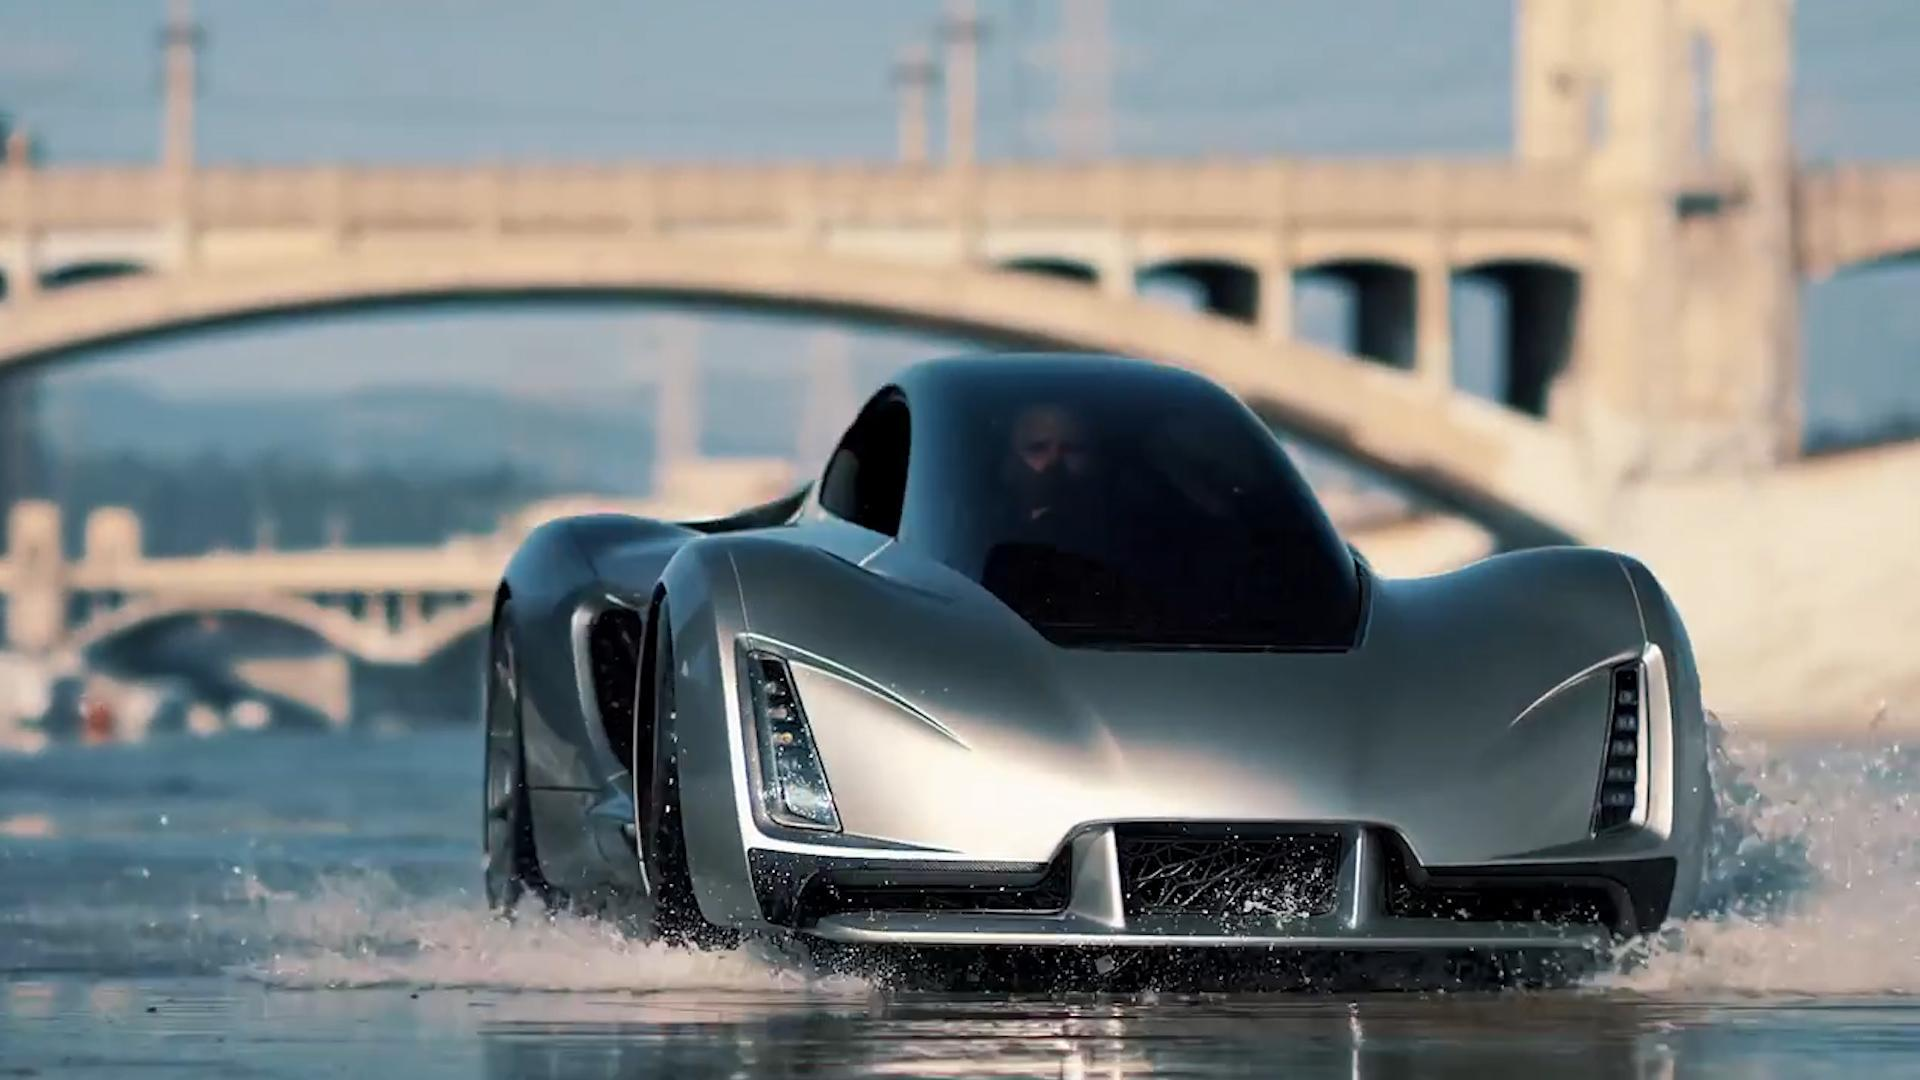 Here is the world's first 3D printed hypercar